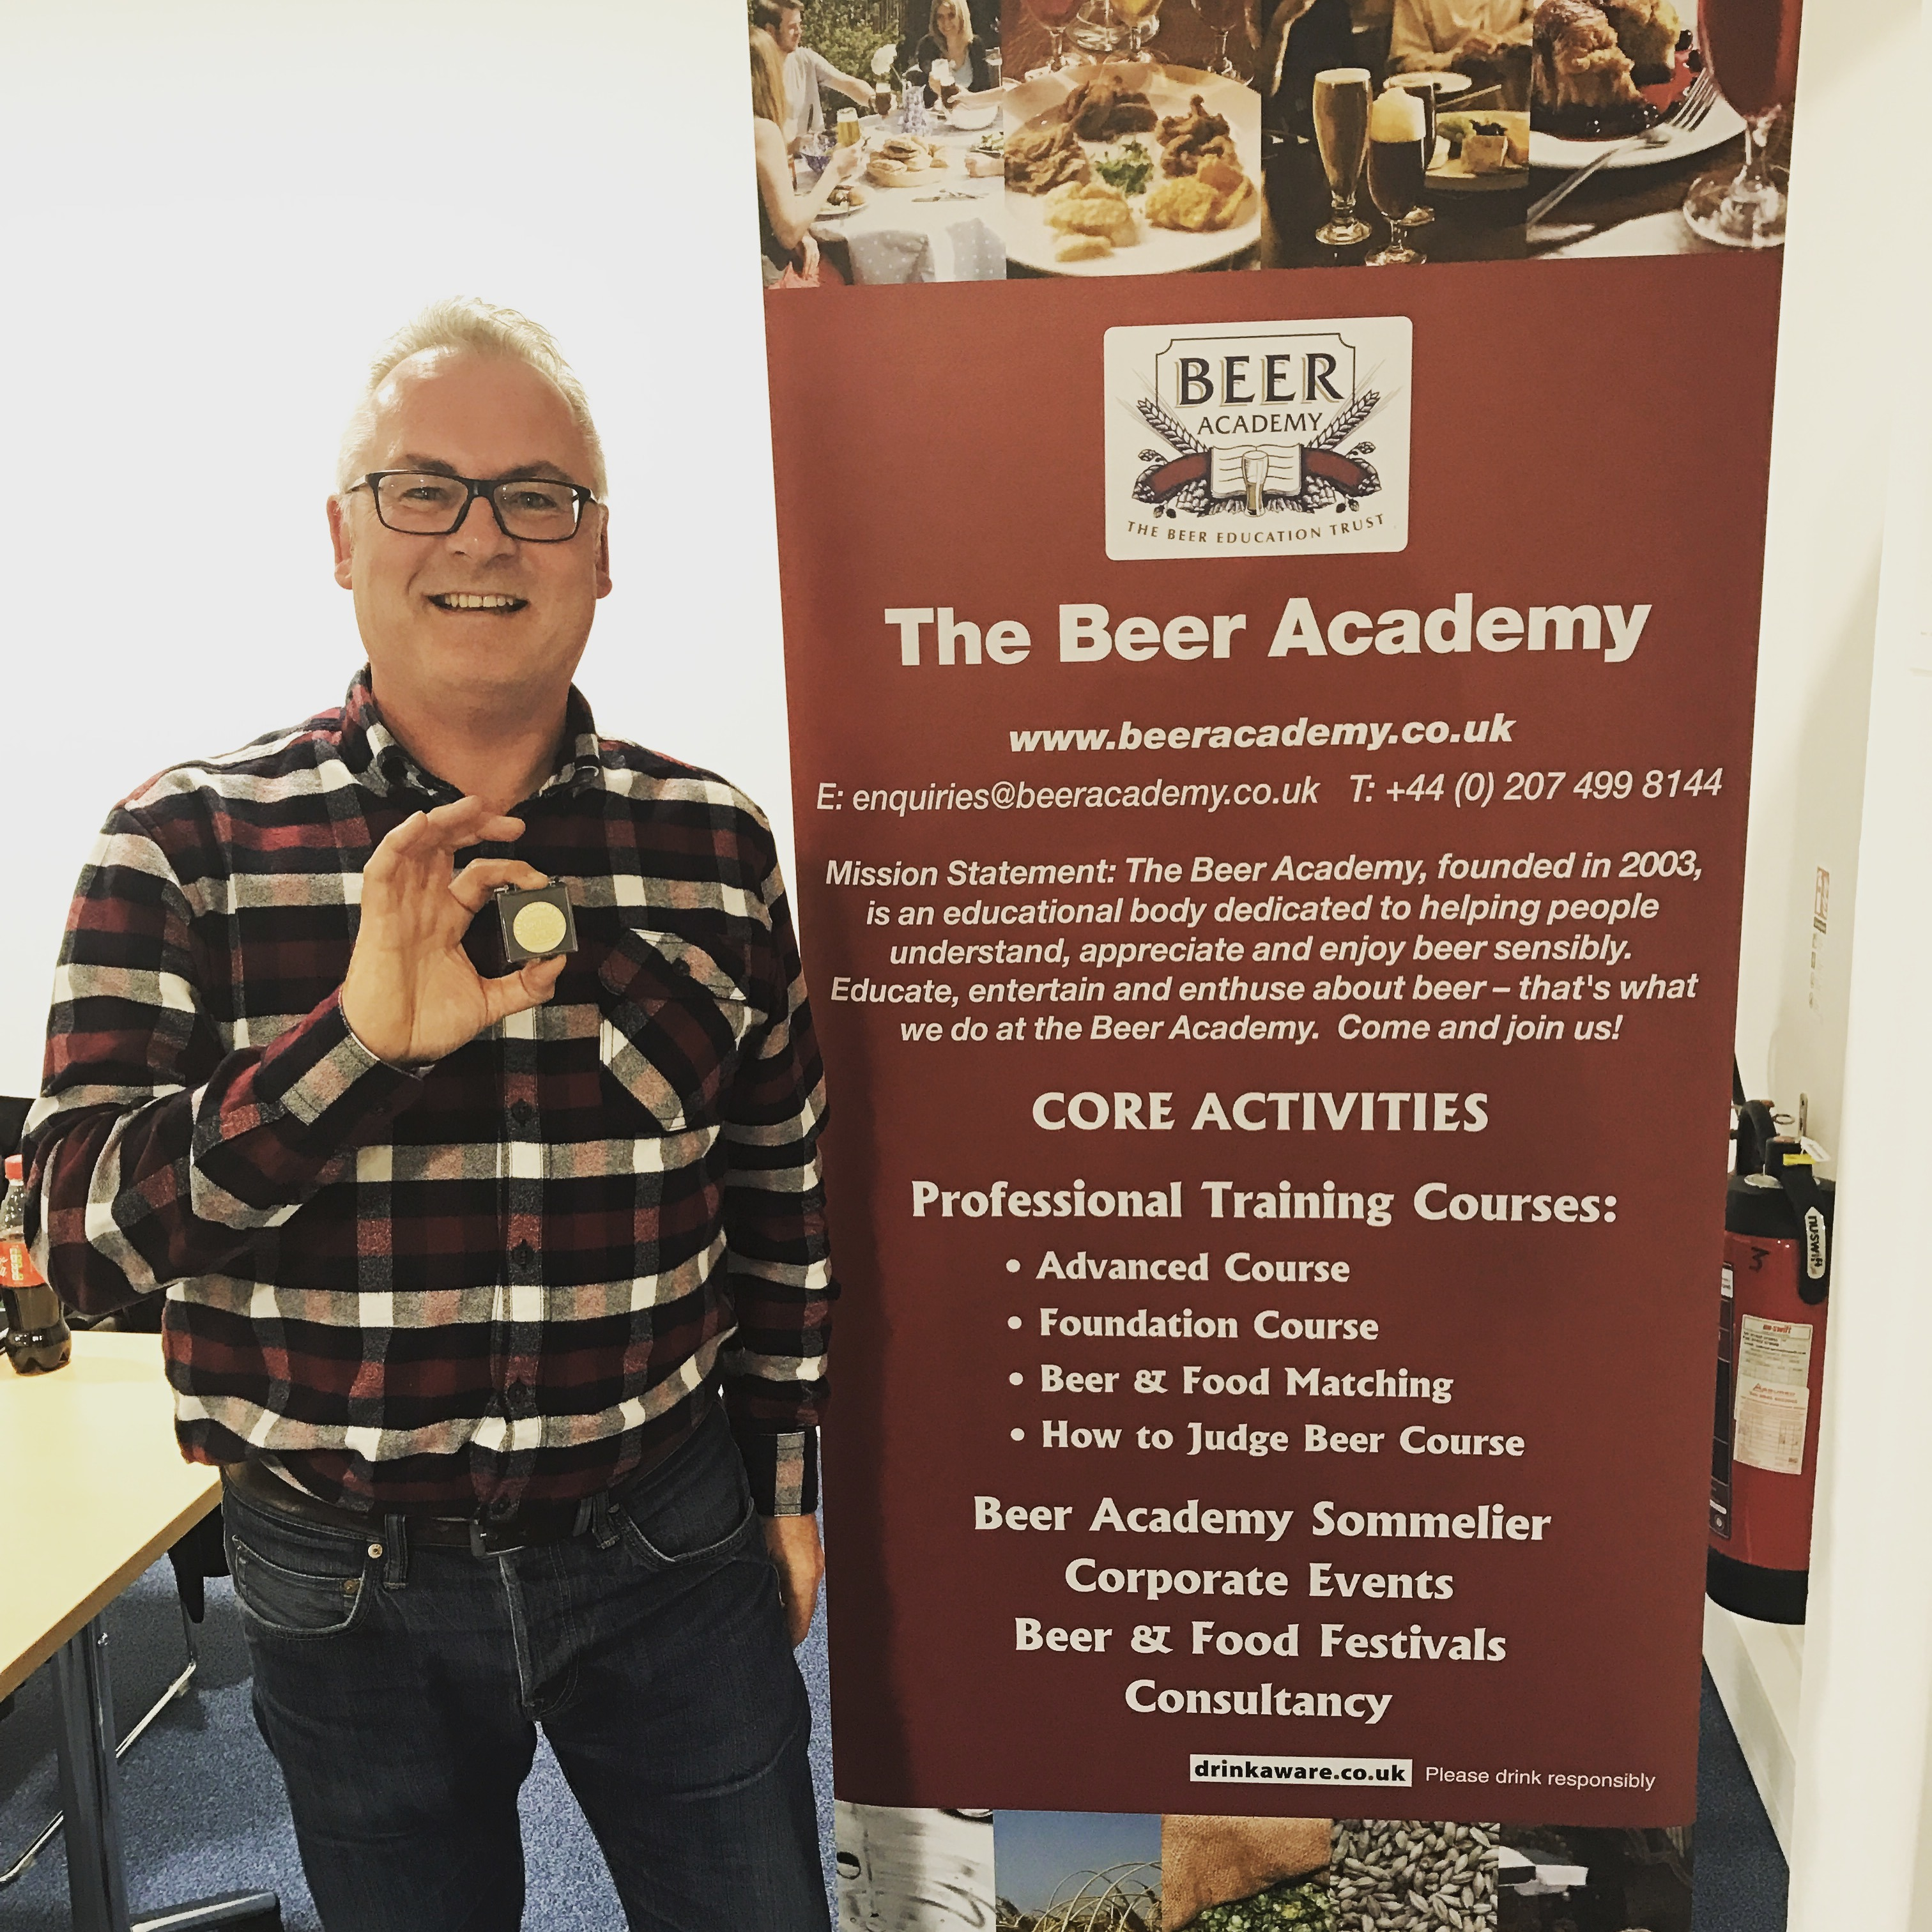 Paul Davies, Surrey, England<br> Accredited: 27th April 2017